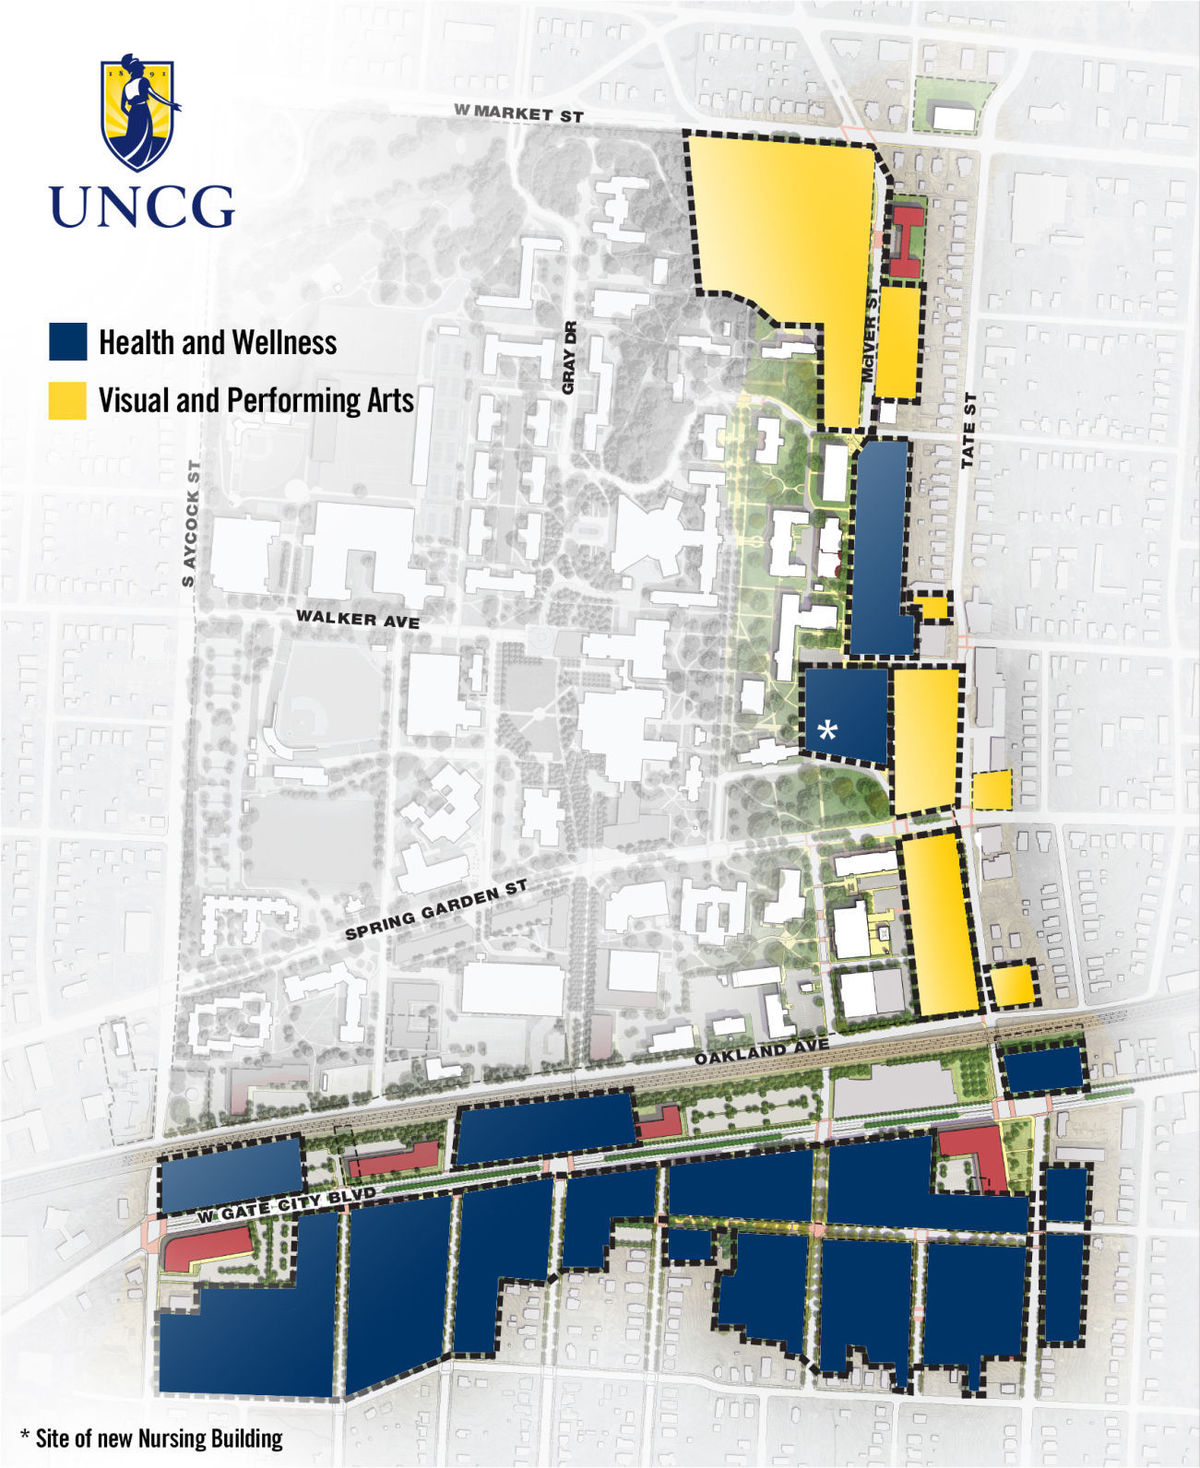 UNCG's millennial campus plan takes big step forward